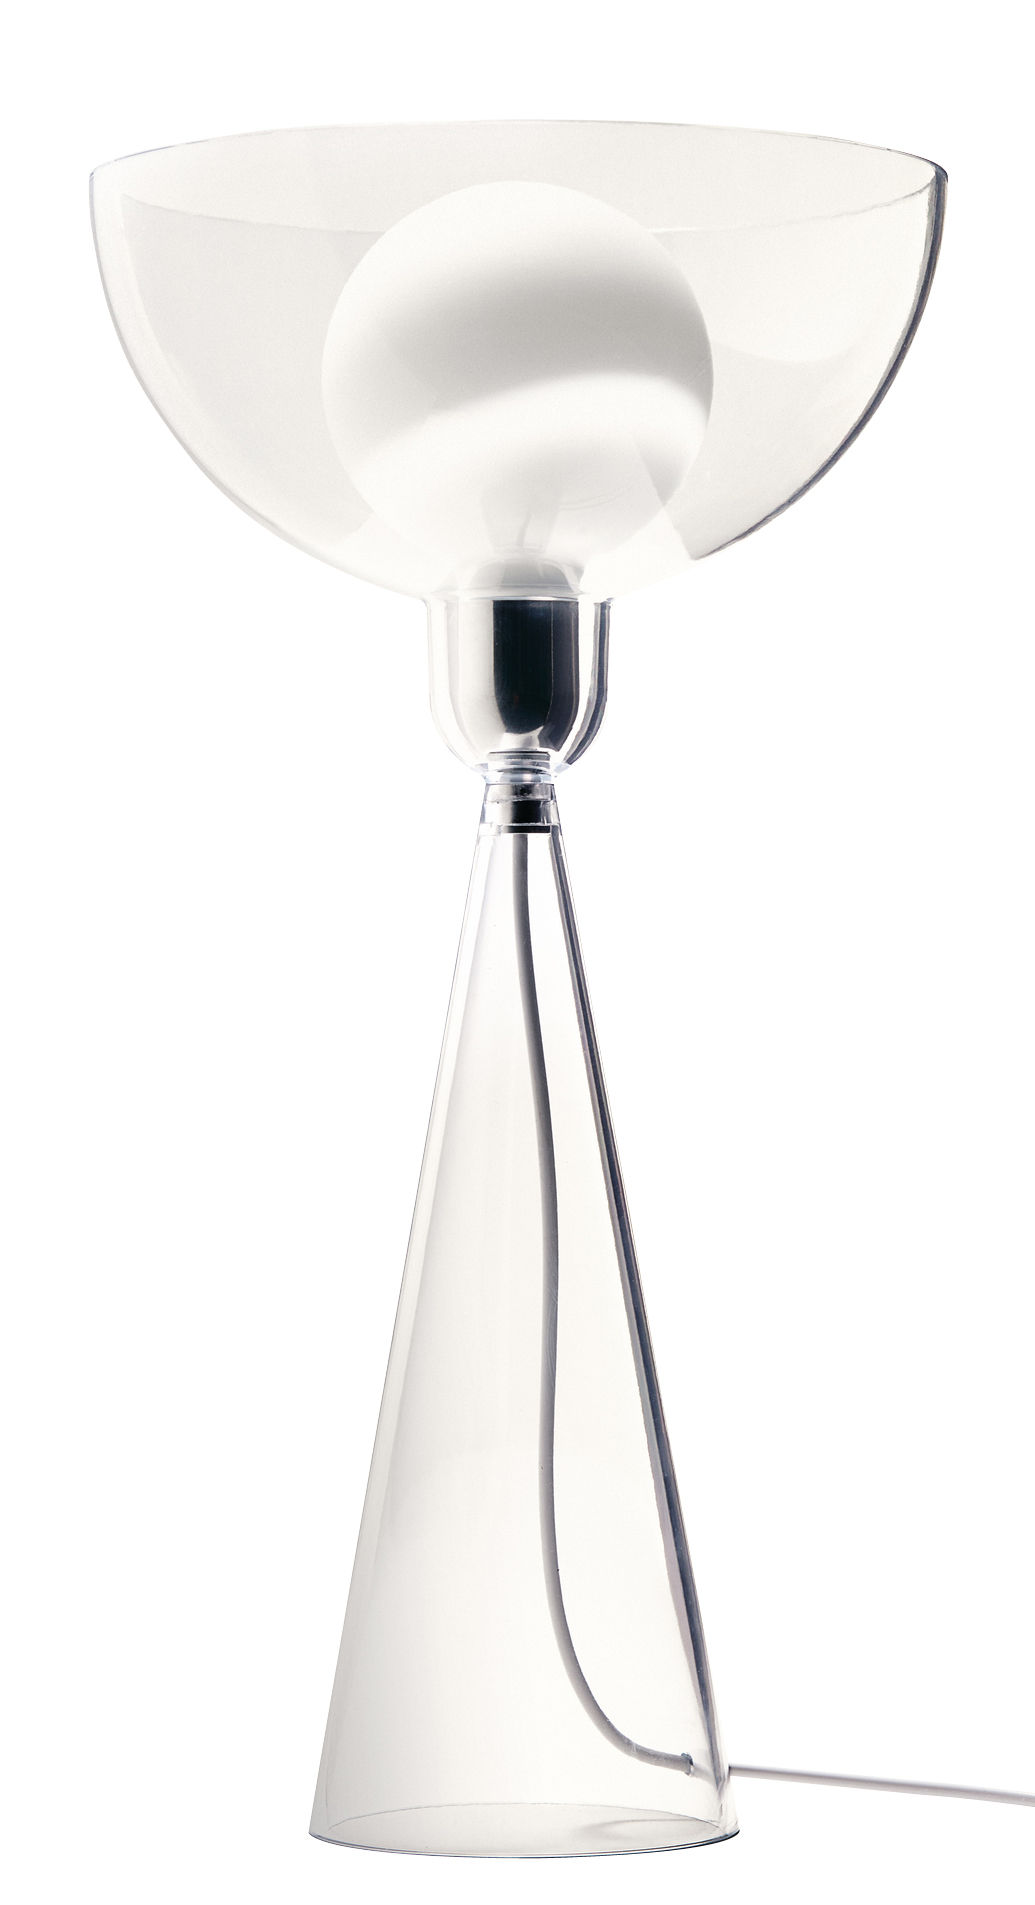 Luminaire - Lampes de table - Lampe de table Lady Shy / H 38 cm - Alessi - Transparent - Polycarbonate